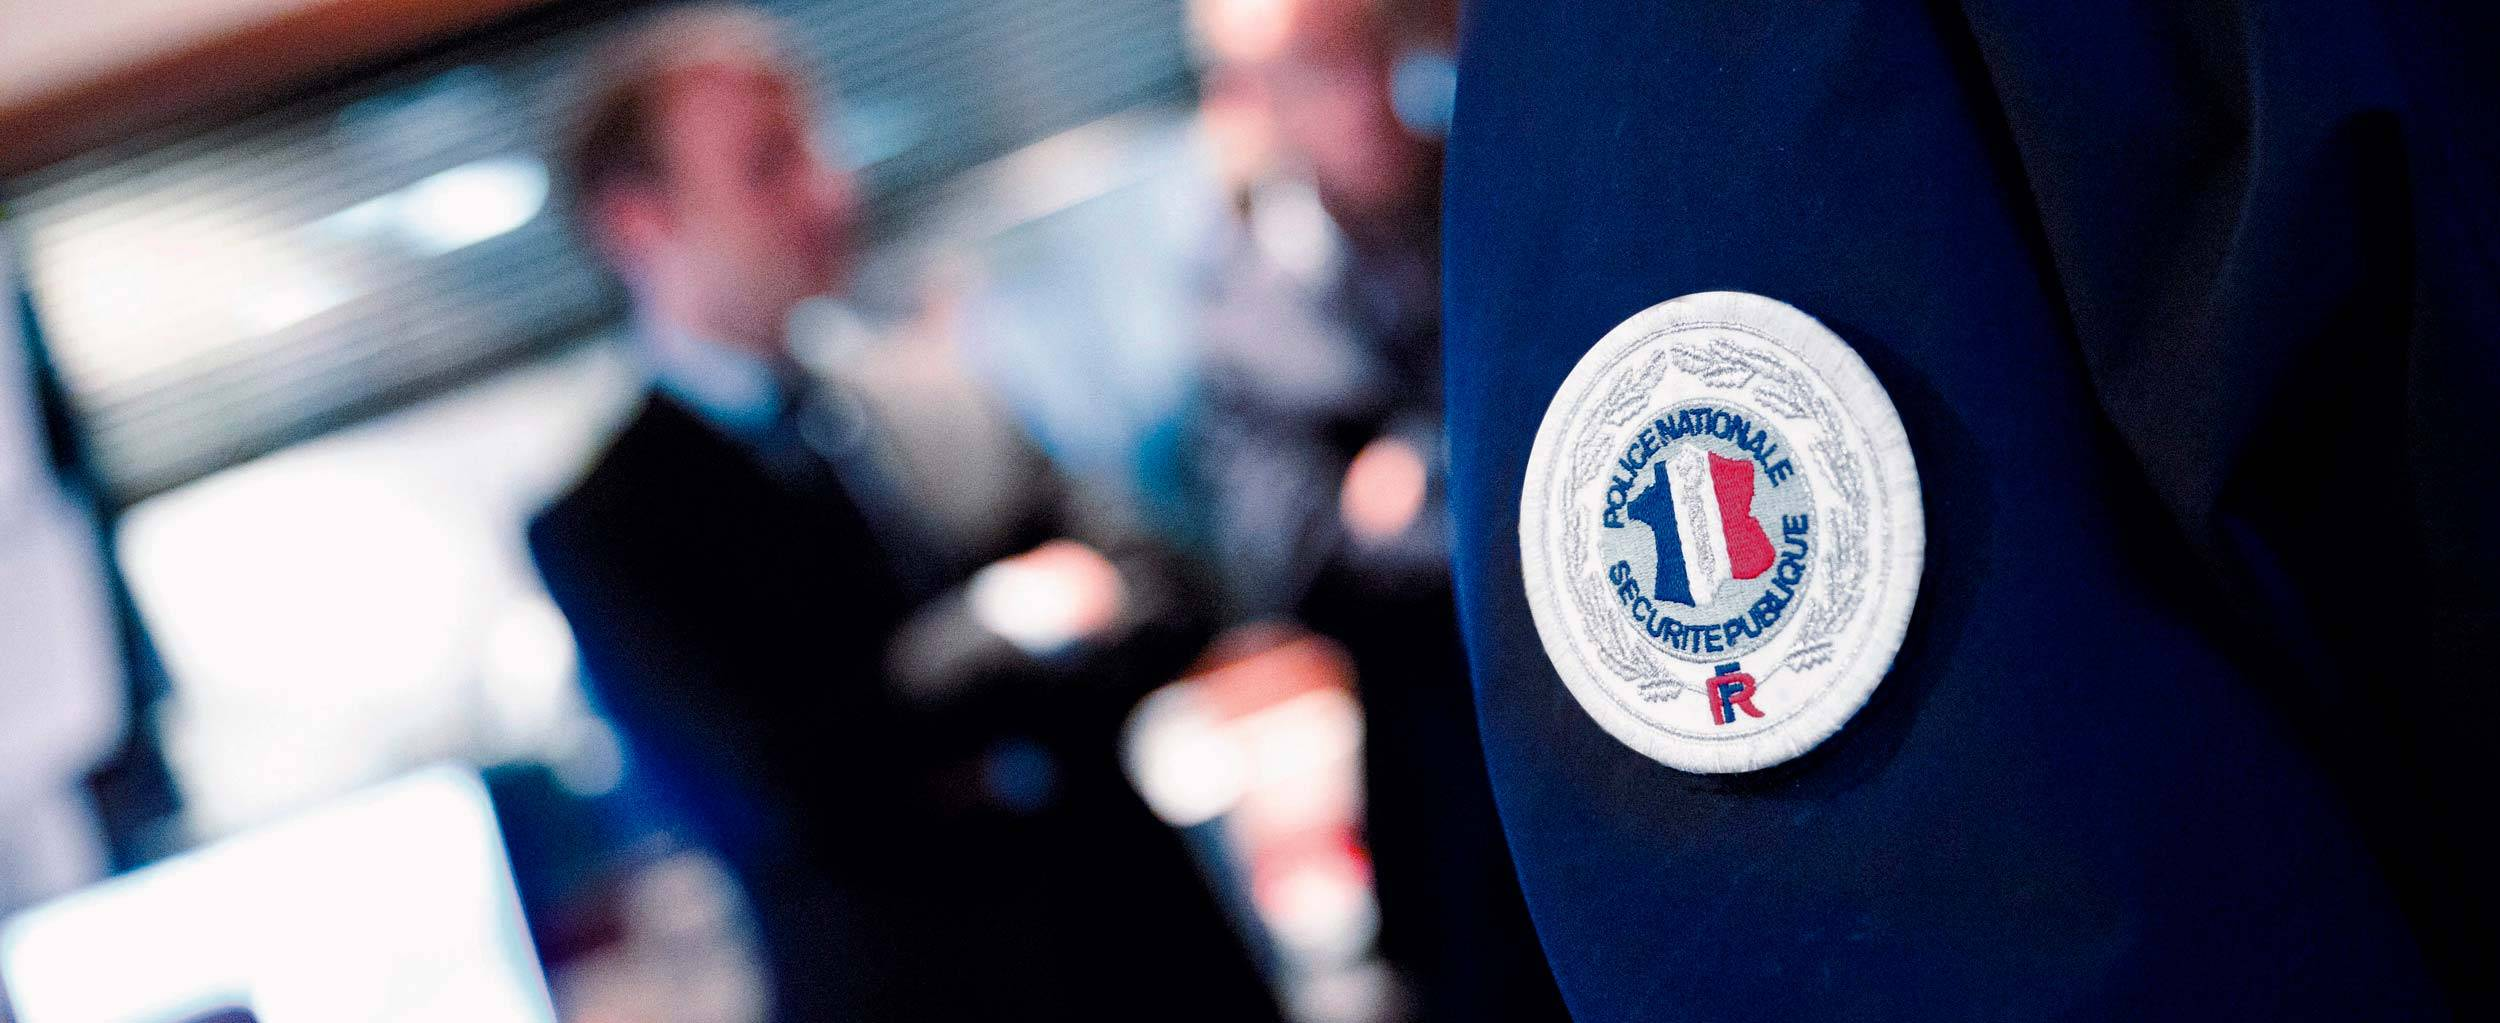 33-securite-police-nationale-emmanuel-macron